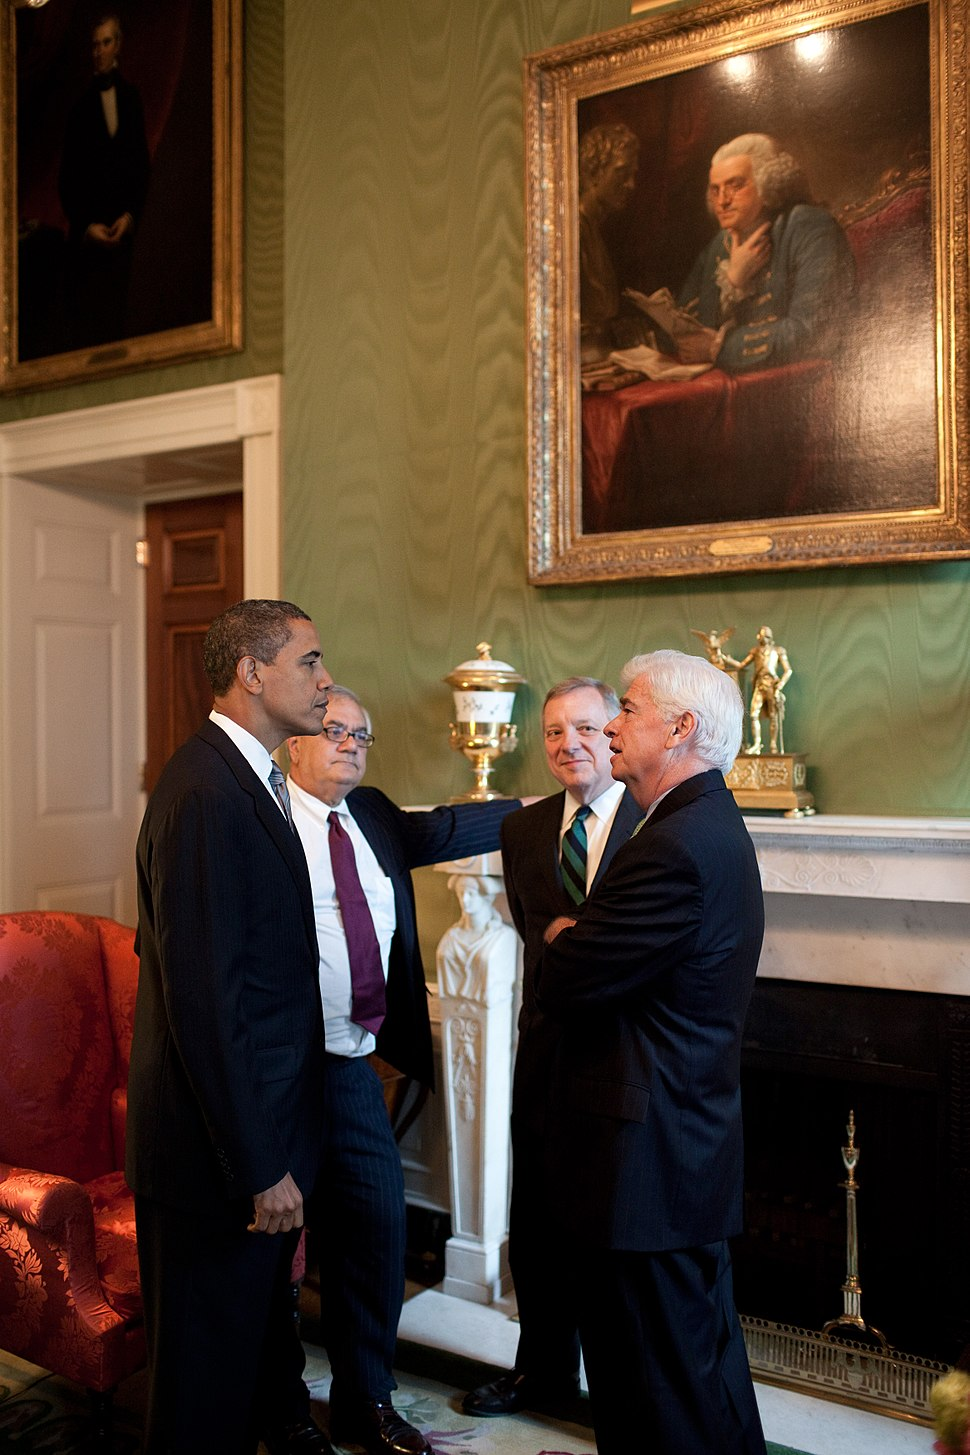 Obama, Frank, and Durbin in the Green Room